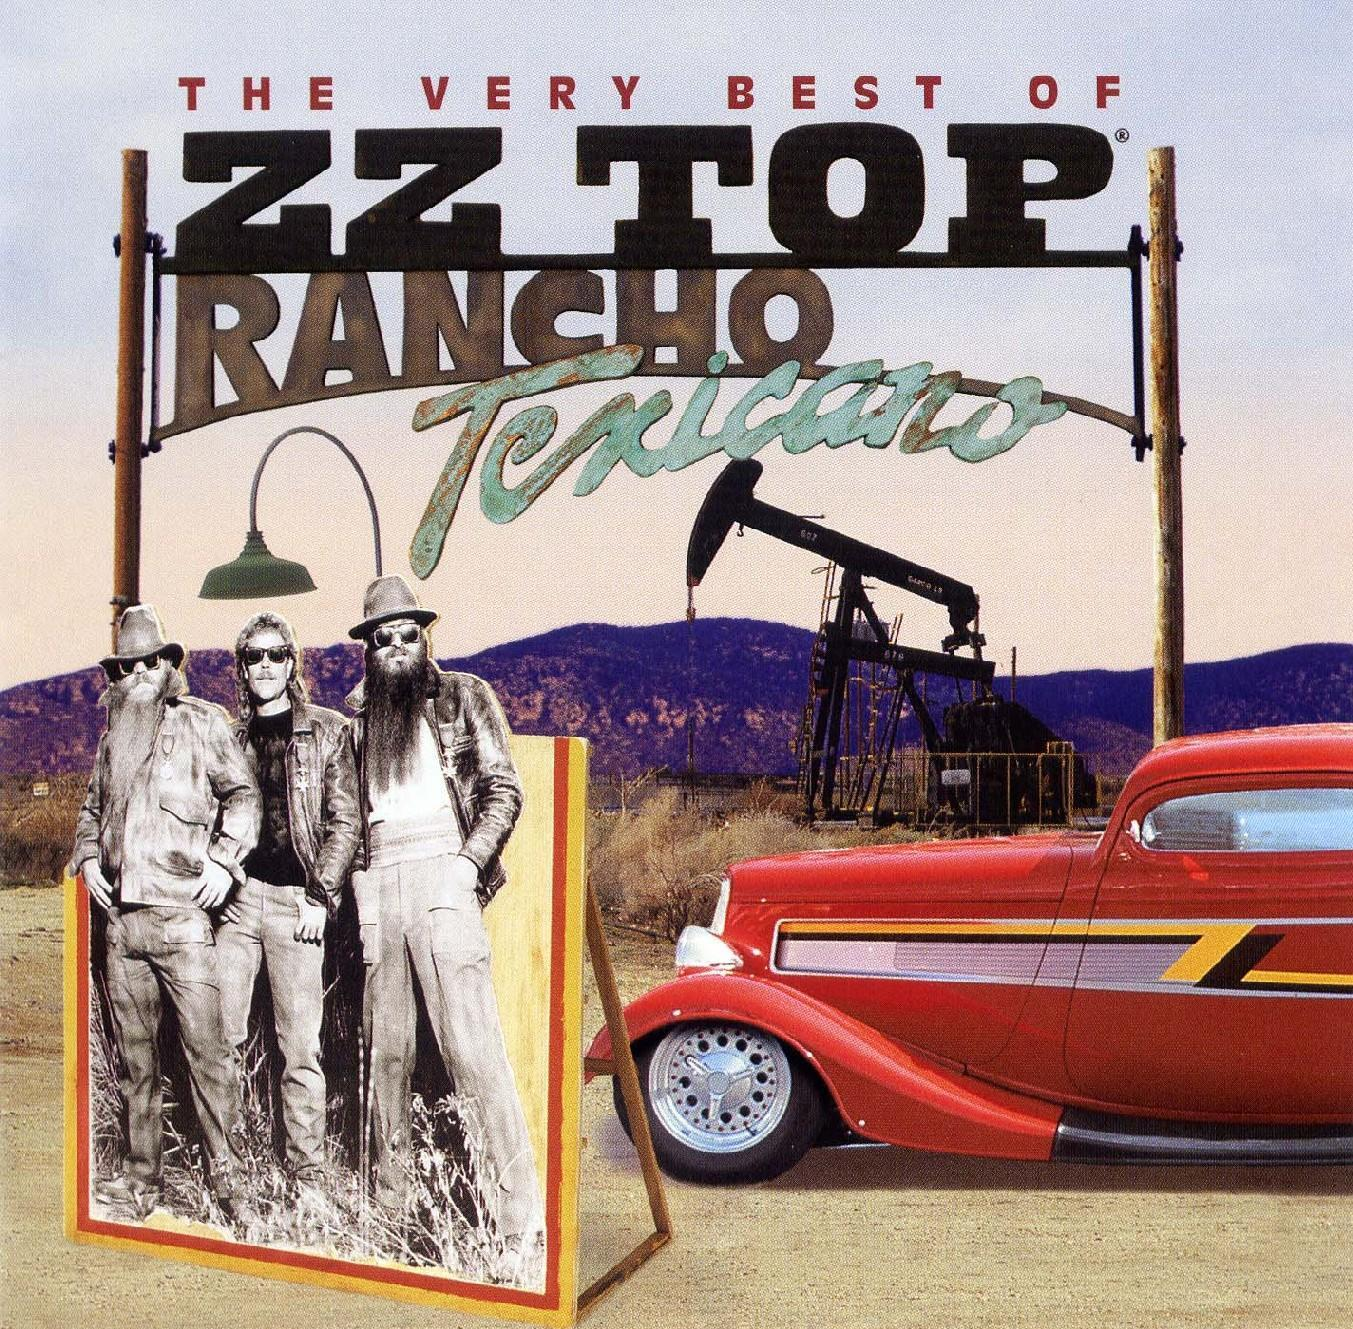 ZZ Top - Rancho TexicanoThe Very Best of